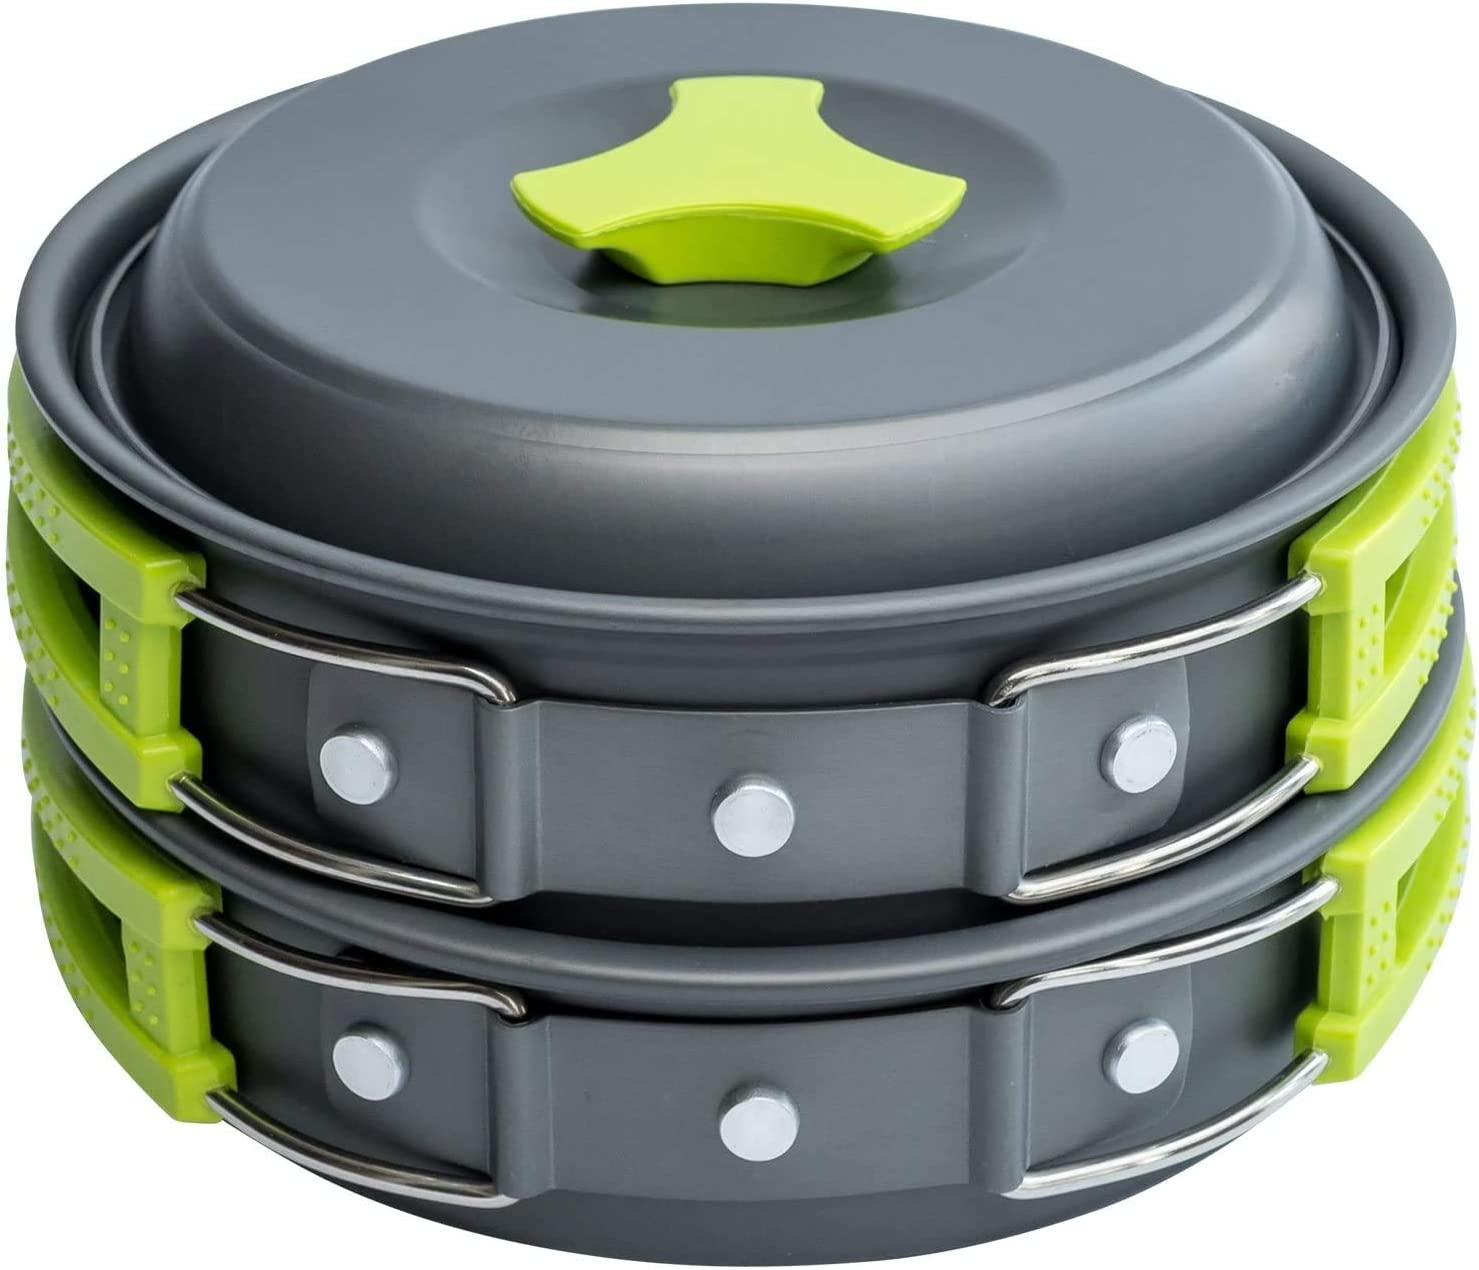 Camping pan Survival Cooking kit - Backpacking Cooking Set with Camp pots and Pans, Great Backpacking cookware and Camp Mess kit. Portable Outdoors 10-Piece Bug Out Backpack Accessories by Aim Goods.